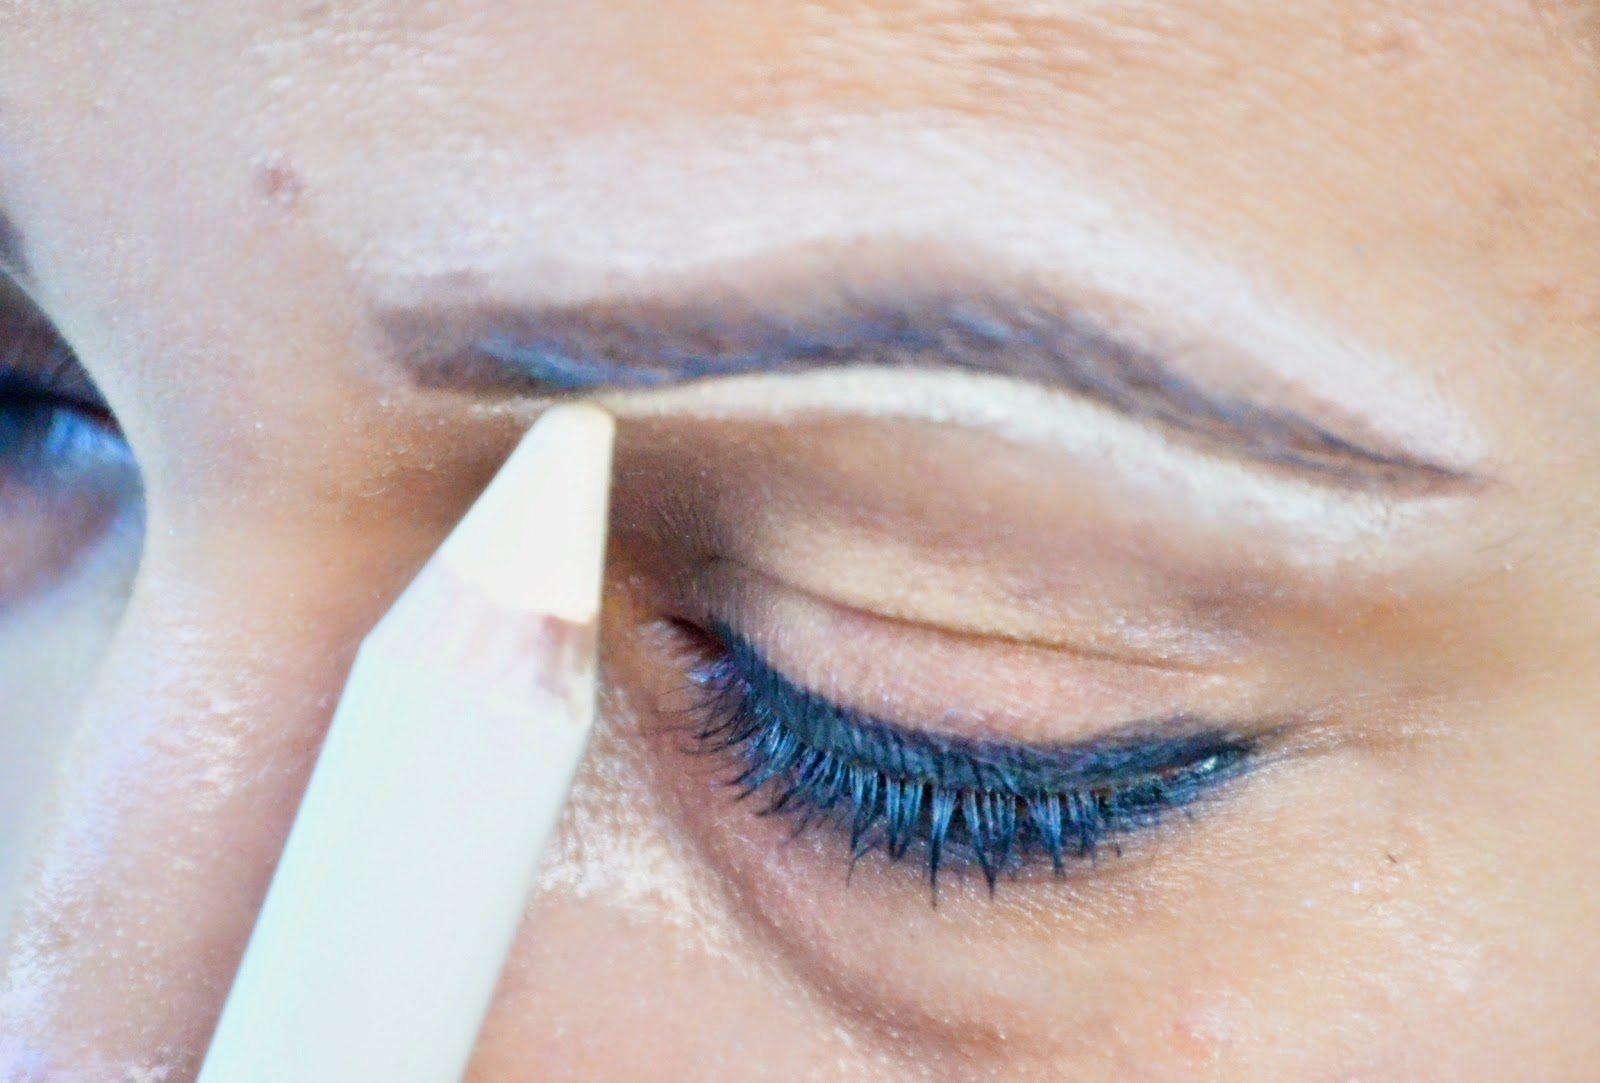 How To Groom Eyebrows Using Billion Dollar Eye Brow Kit A Step By Step Tutorial + Giveaway www.sandysandhu.co